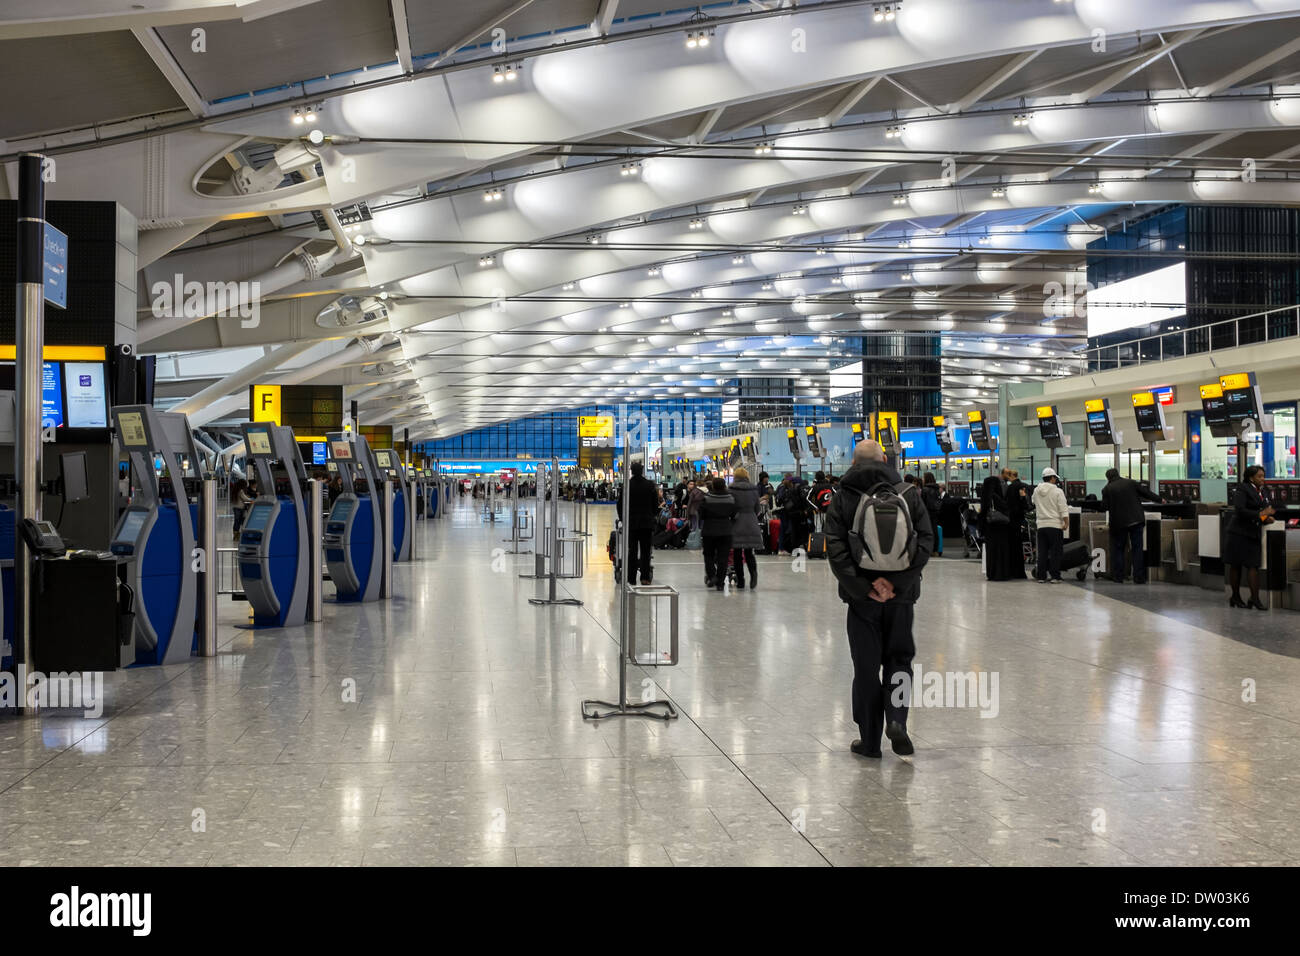 Check in booths and luggage drop off counters in departure hall at Terminal 5 T5, Heathrow Airport, London, UK - Stock Image